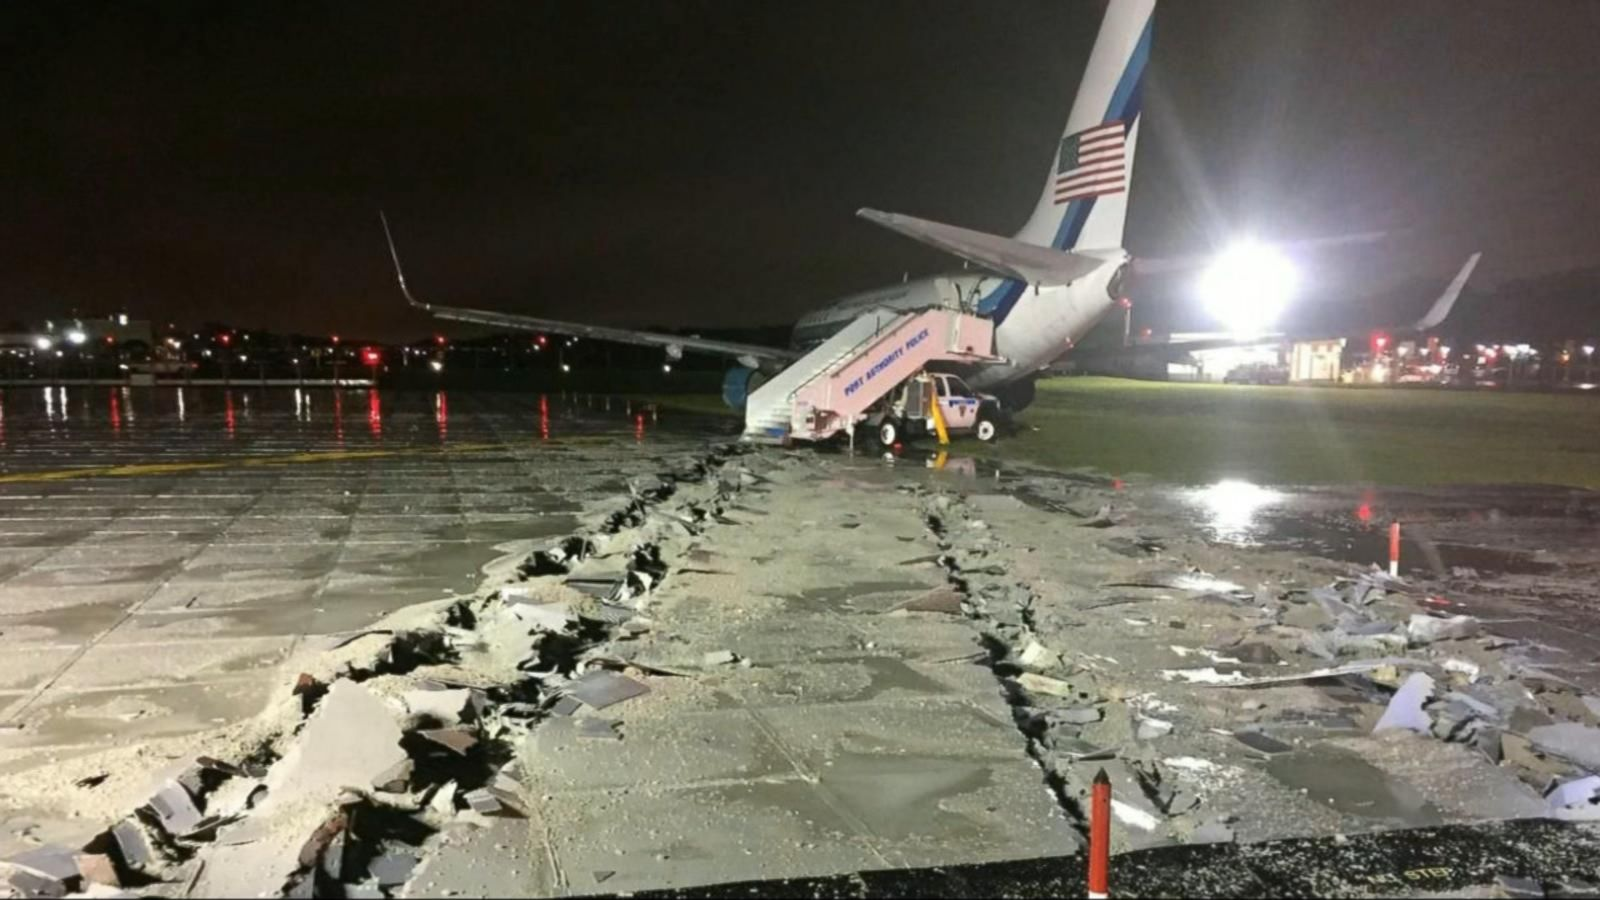 VIDEO: Mike Pence's Plane Skids Off Runway at LaGuardia Airport